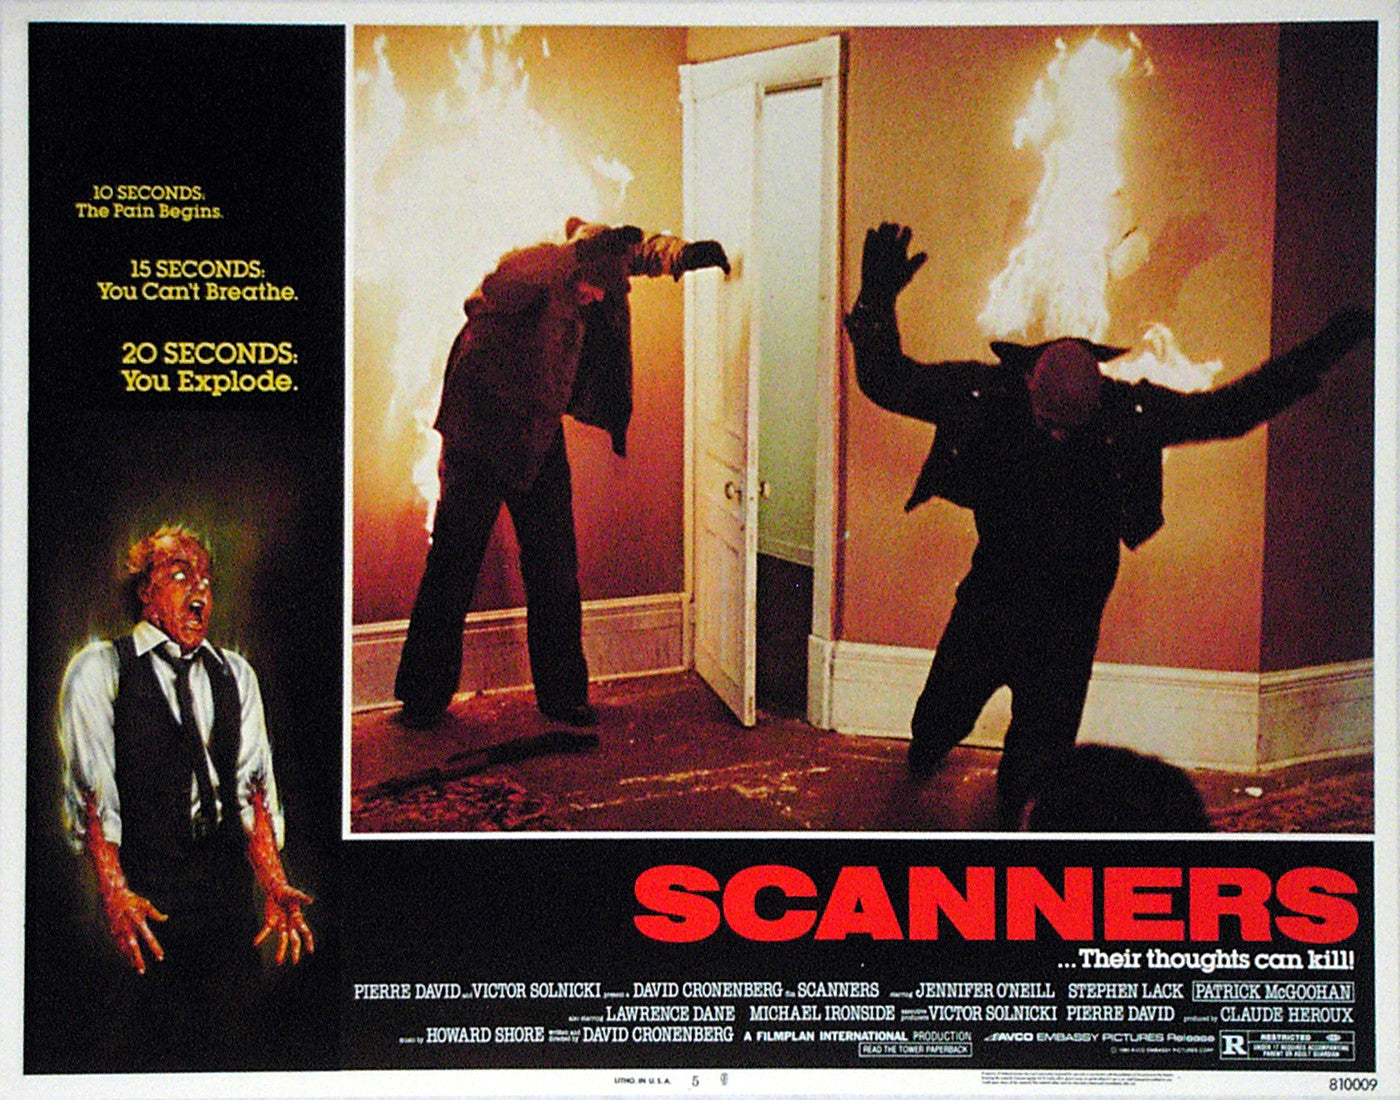 SCANNERS - US lobby card v5